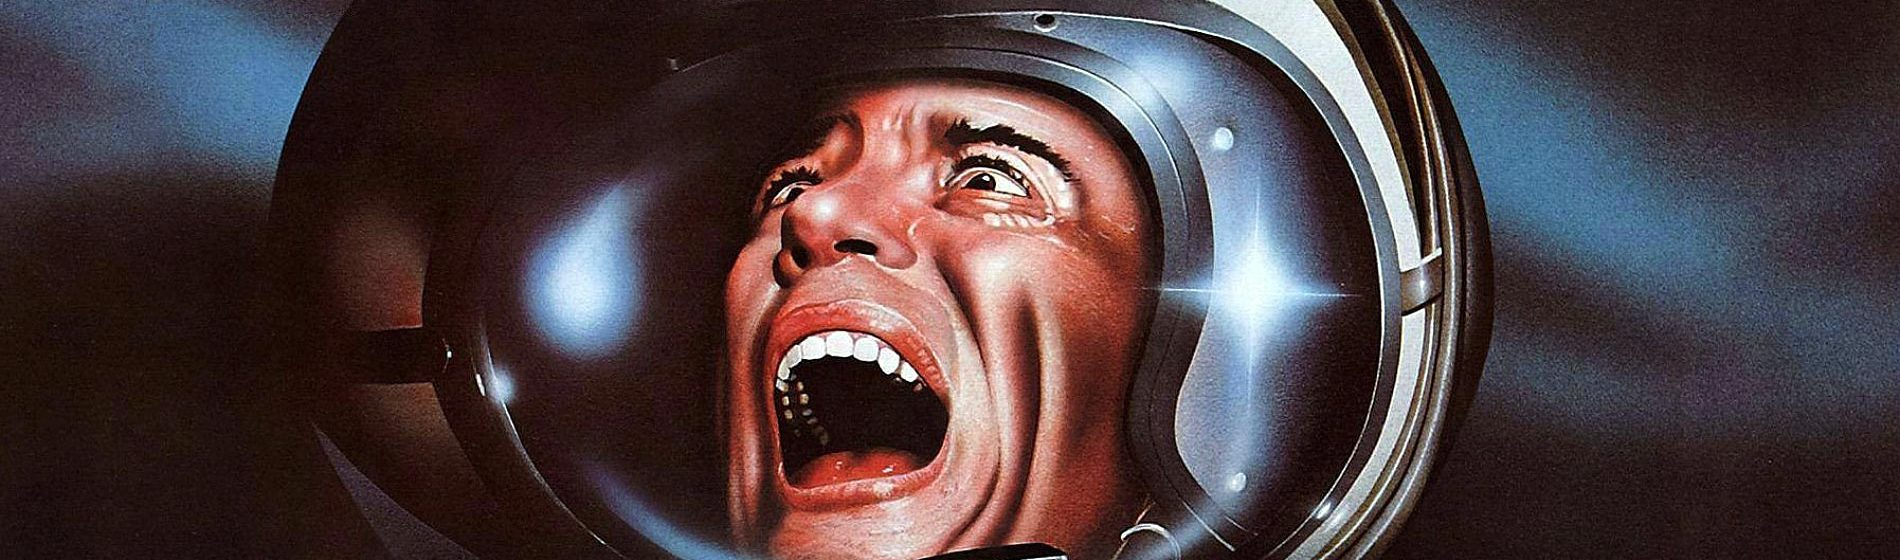 Contamination (1980) Loose Cannons